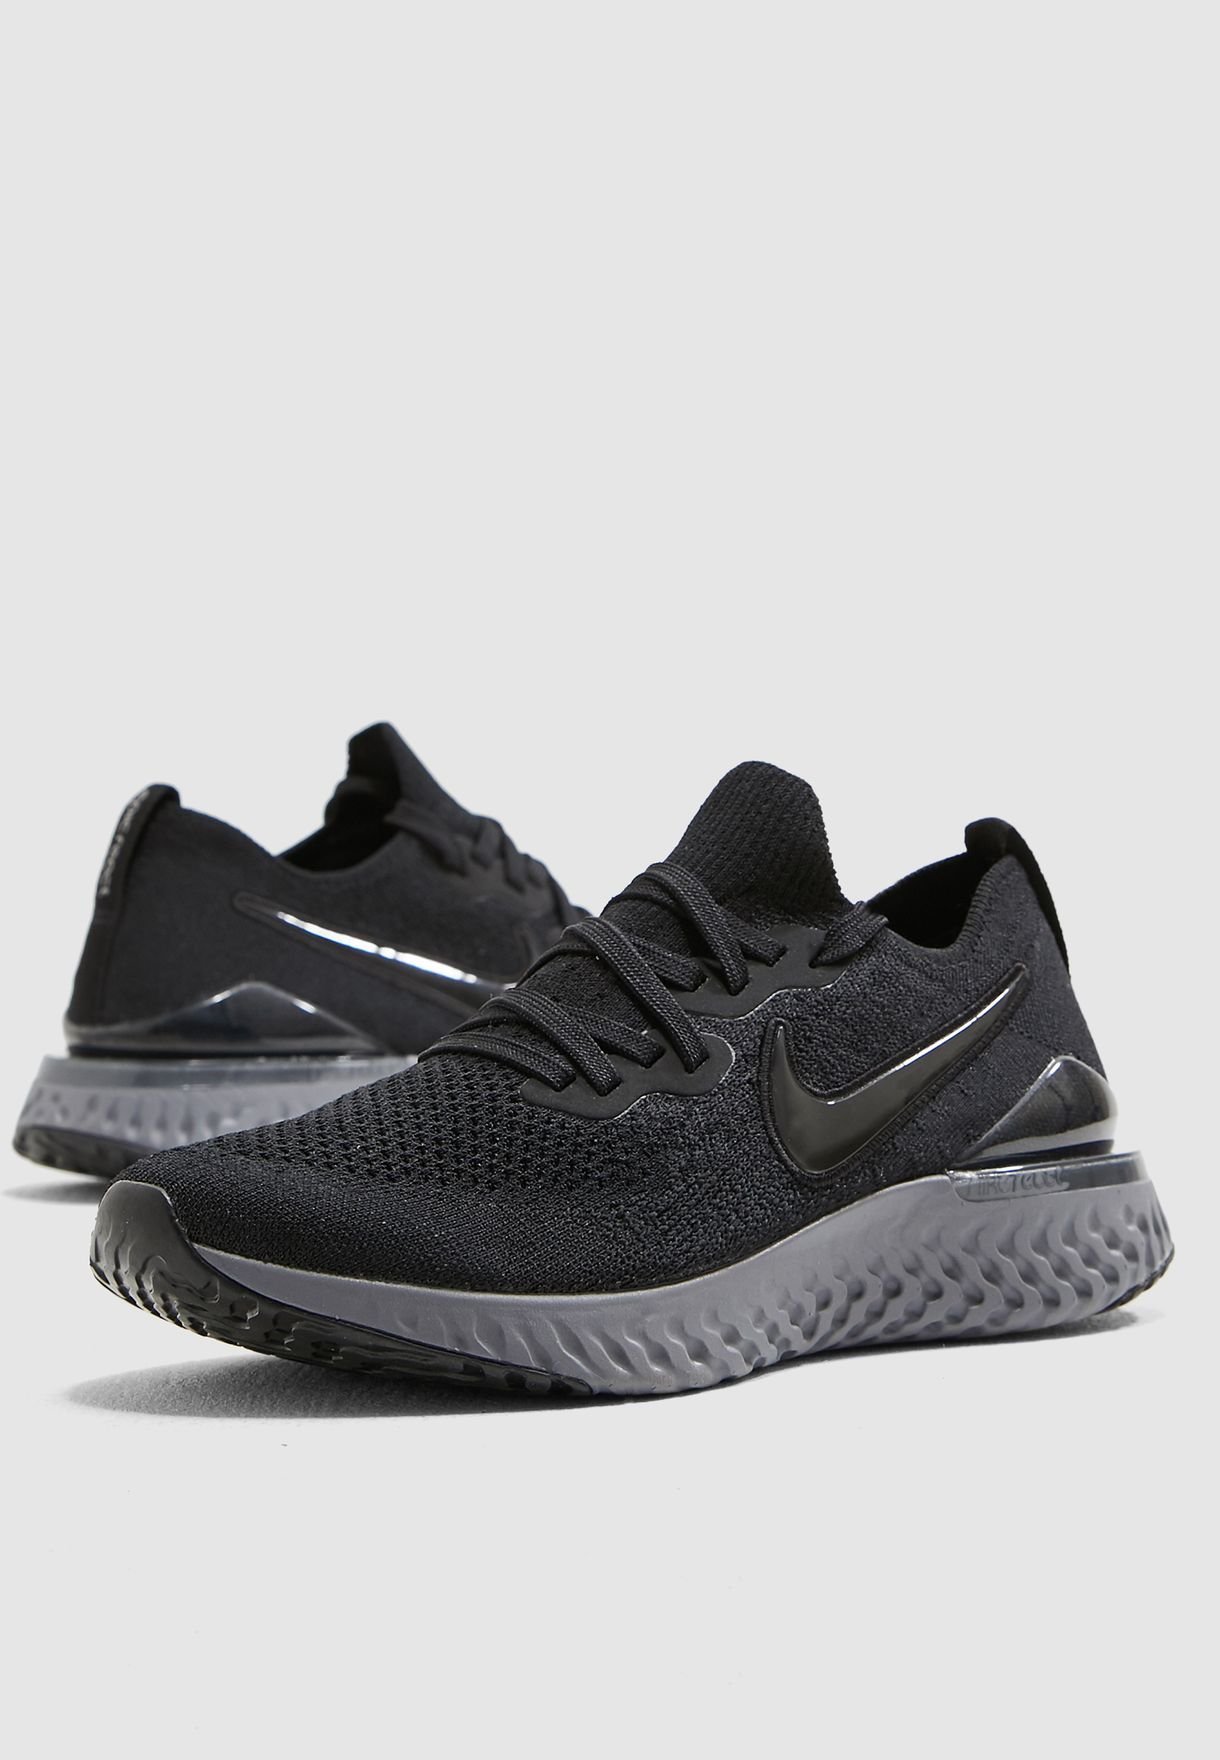 211f7f5bbc6a Shop Nike black Epic React Flyknit 2 BQ8927-001 for Women in Saudi -  72704SH07PLP